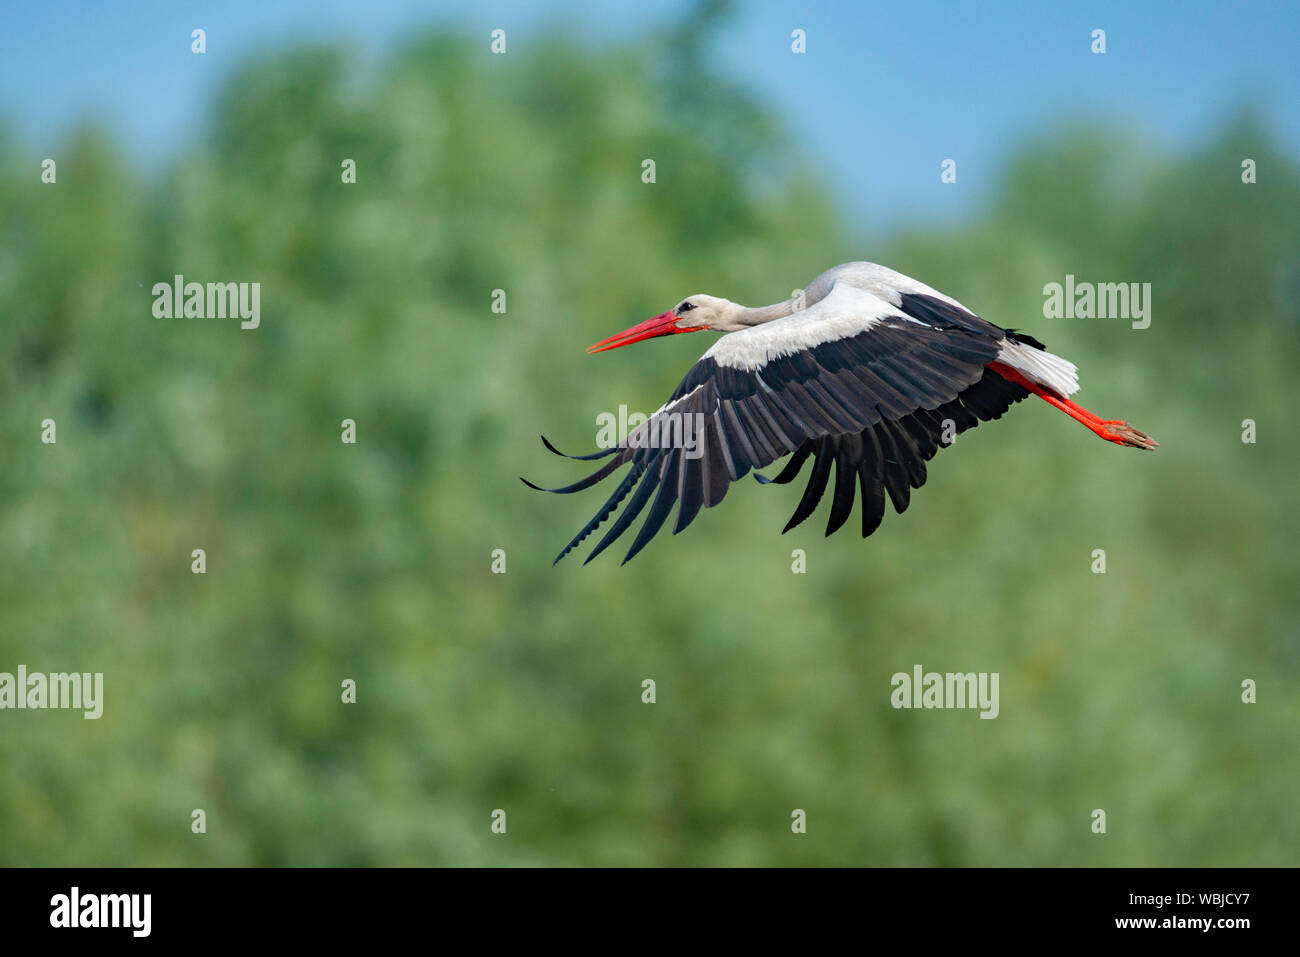 White stork flying in mid air, with blured background. Stock Photo